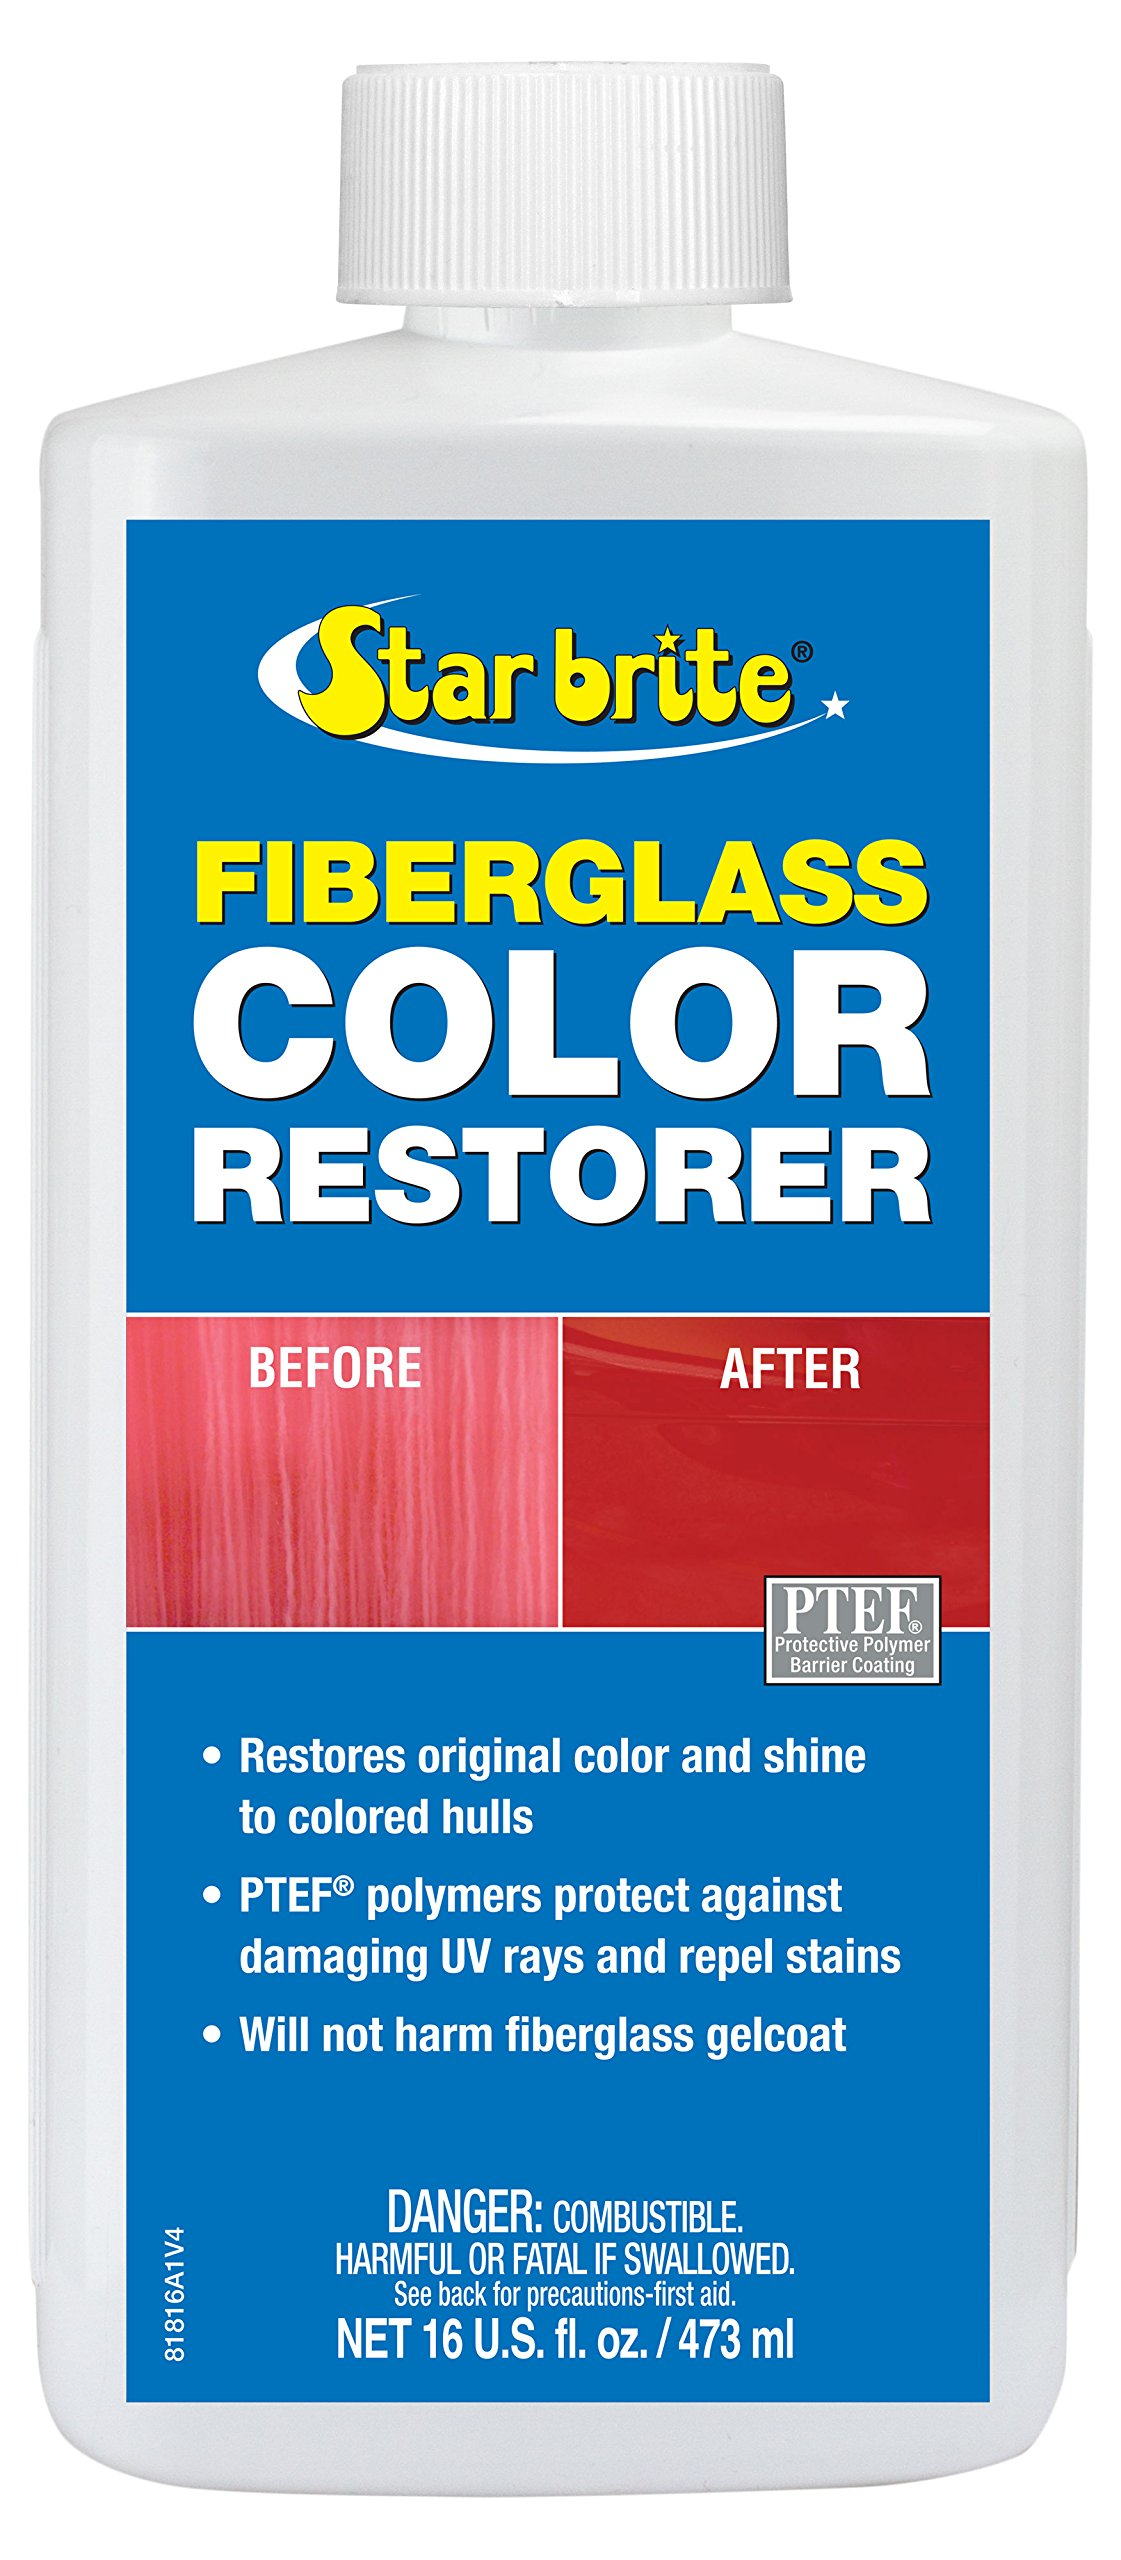 Star Brite Fiberglass Color Restorer With PTEF - 16 oz by Star Brite (Image #1)